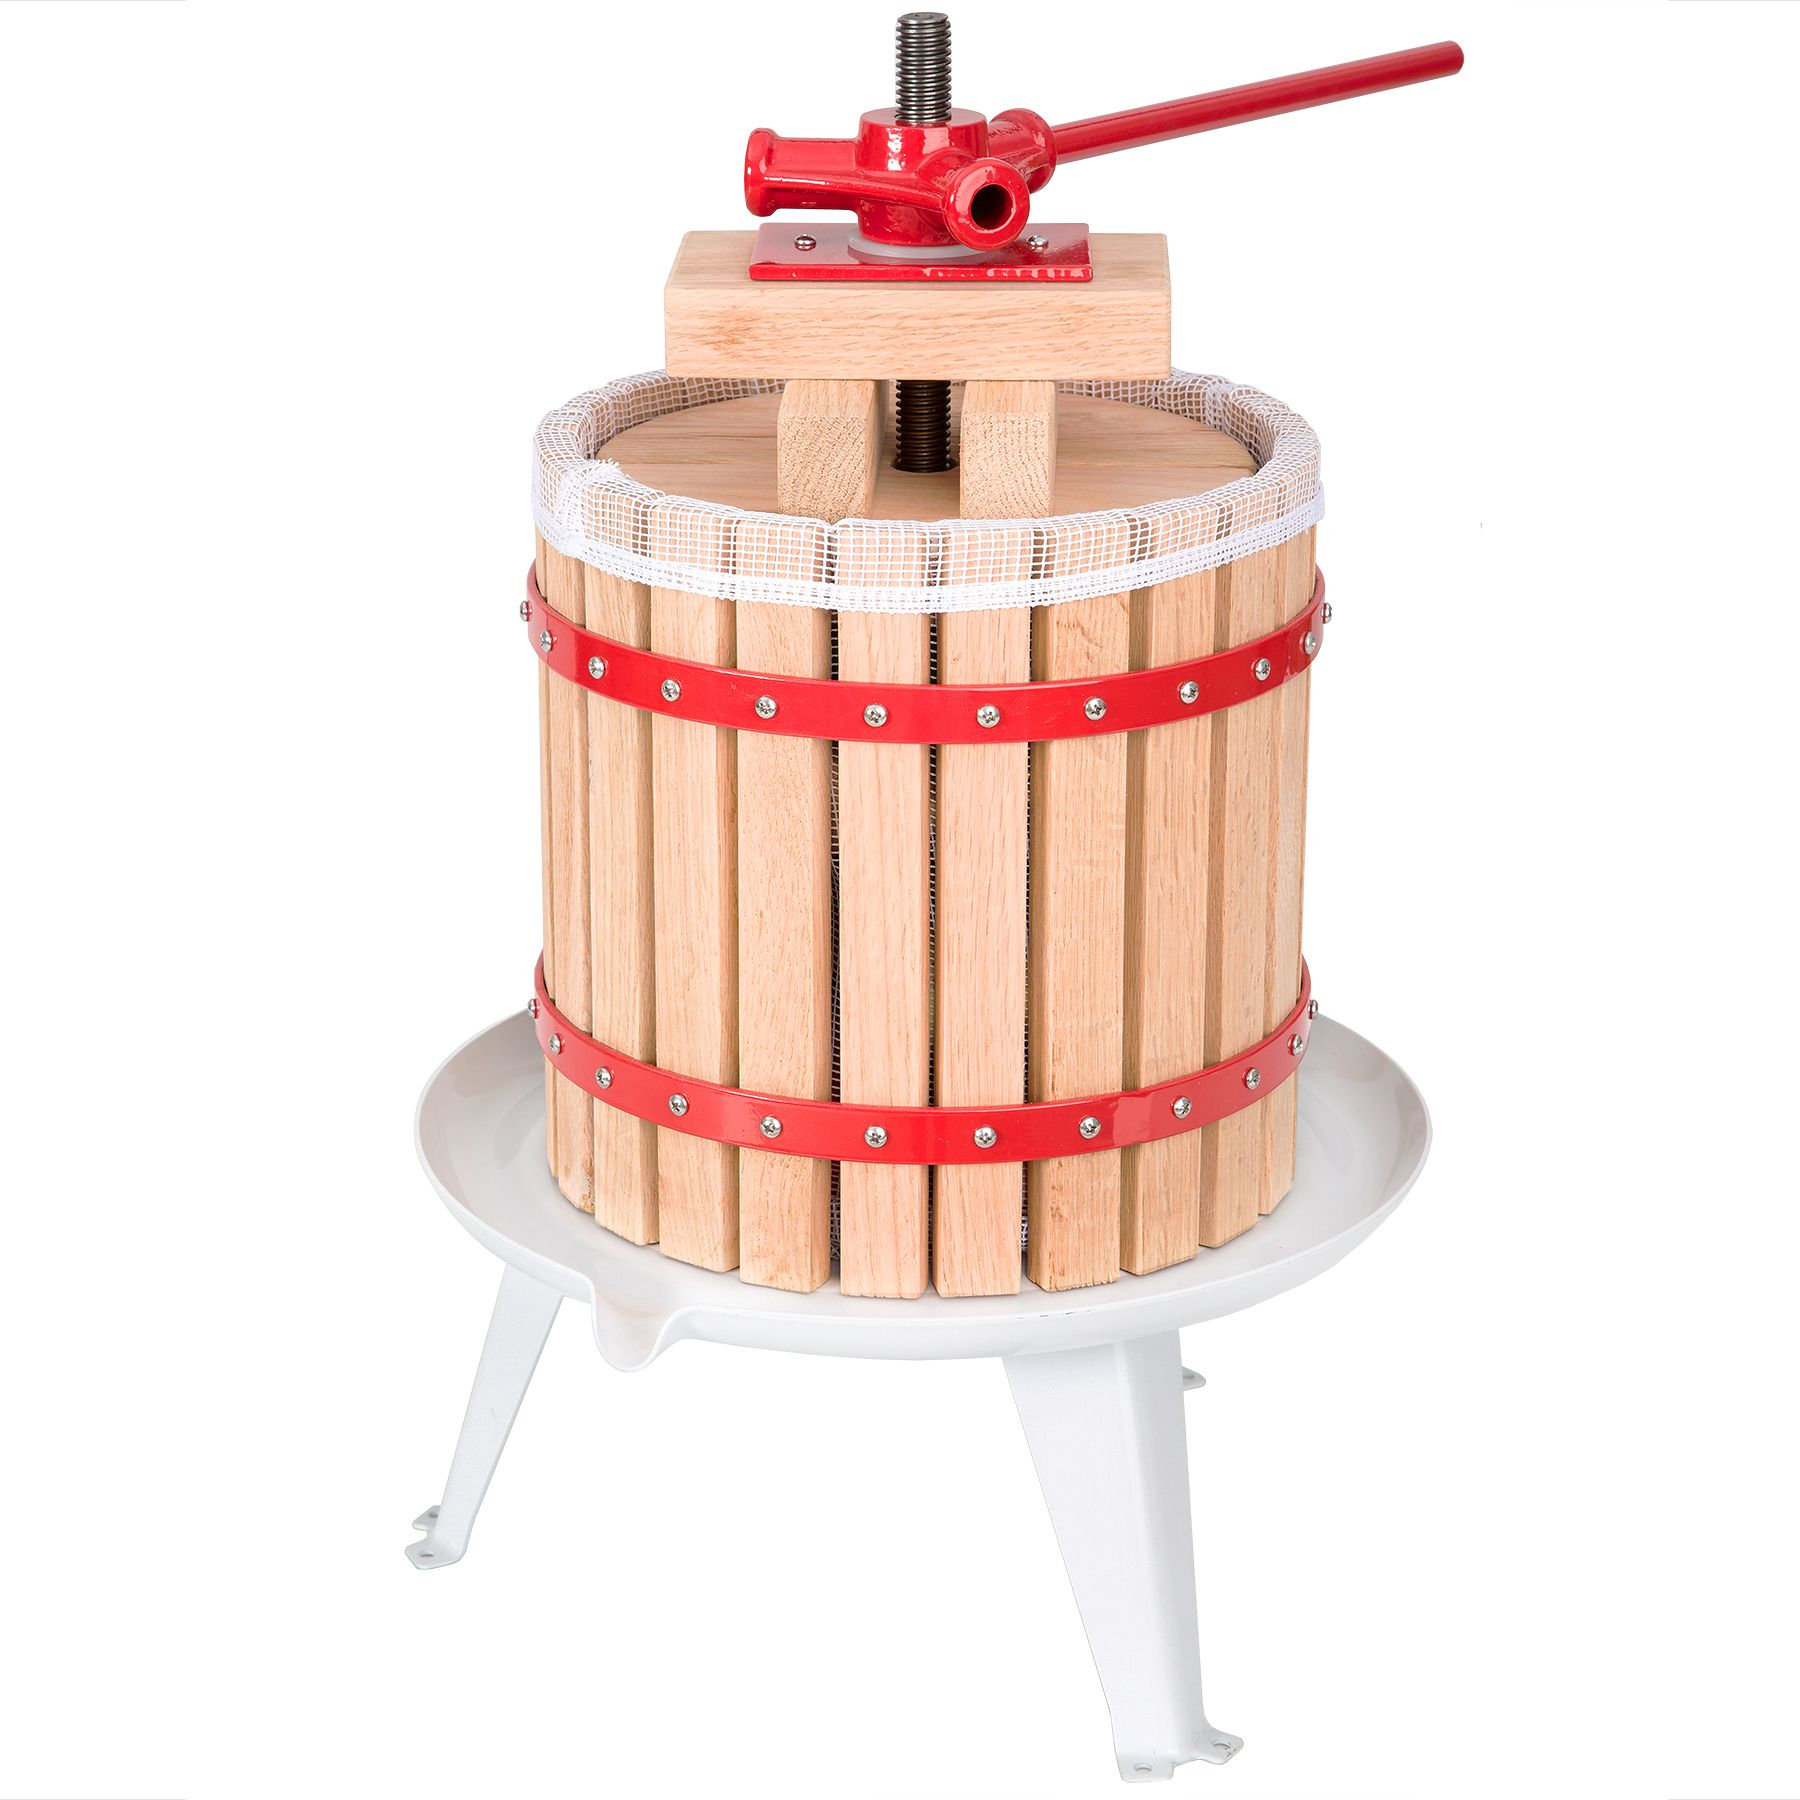 Fruit Press Wine Press Apple Cider Press Fruit Crusher